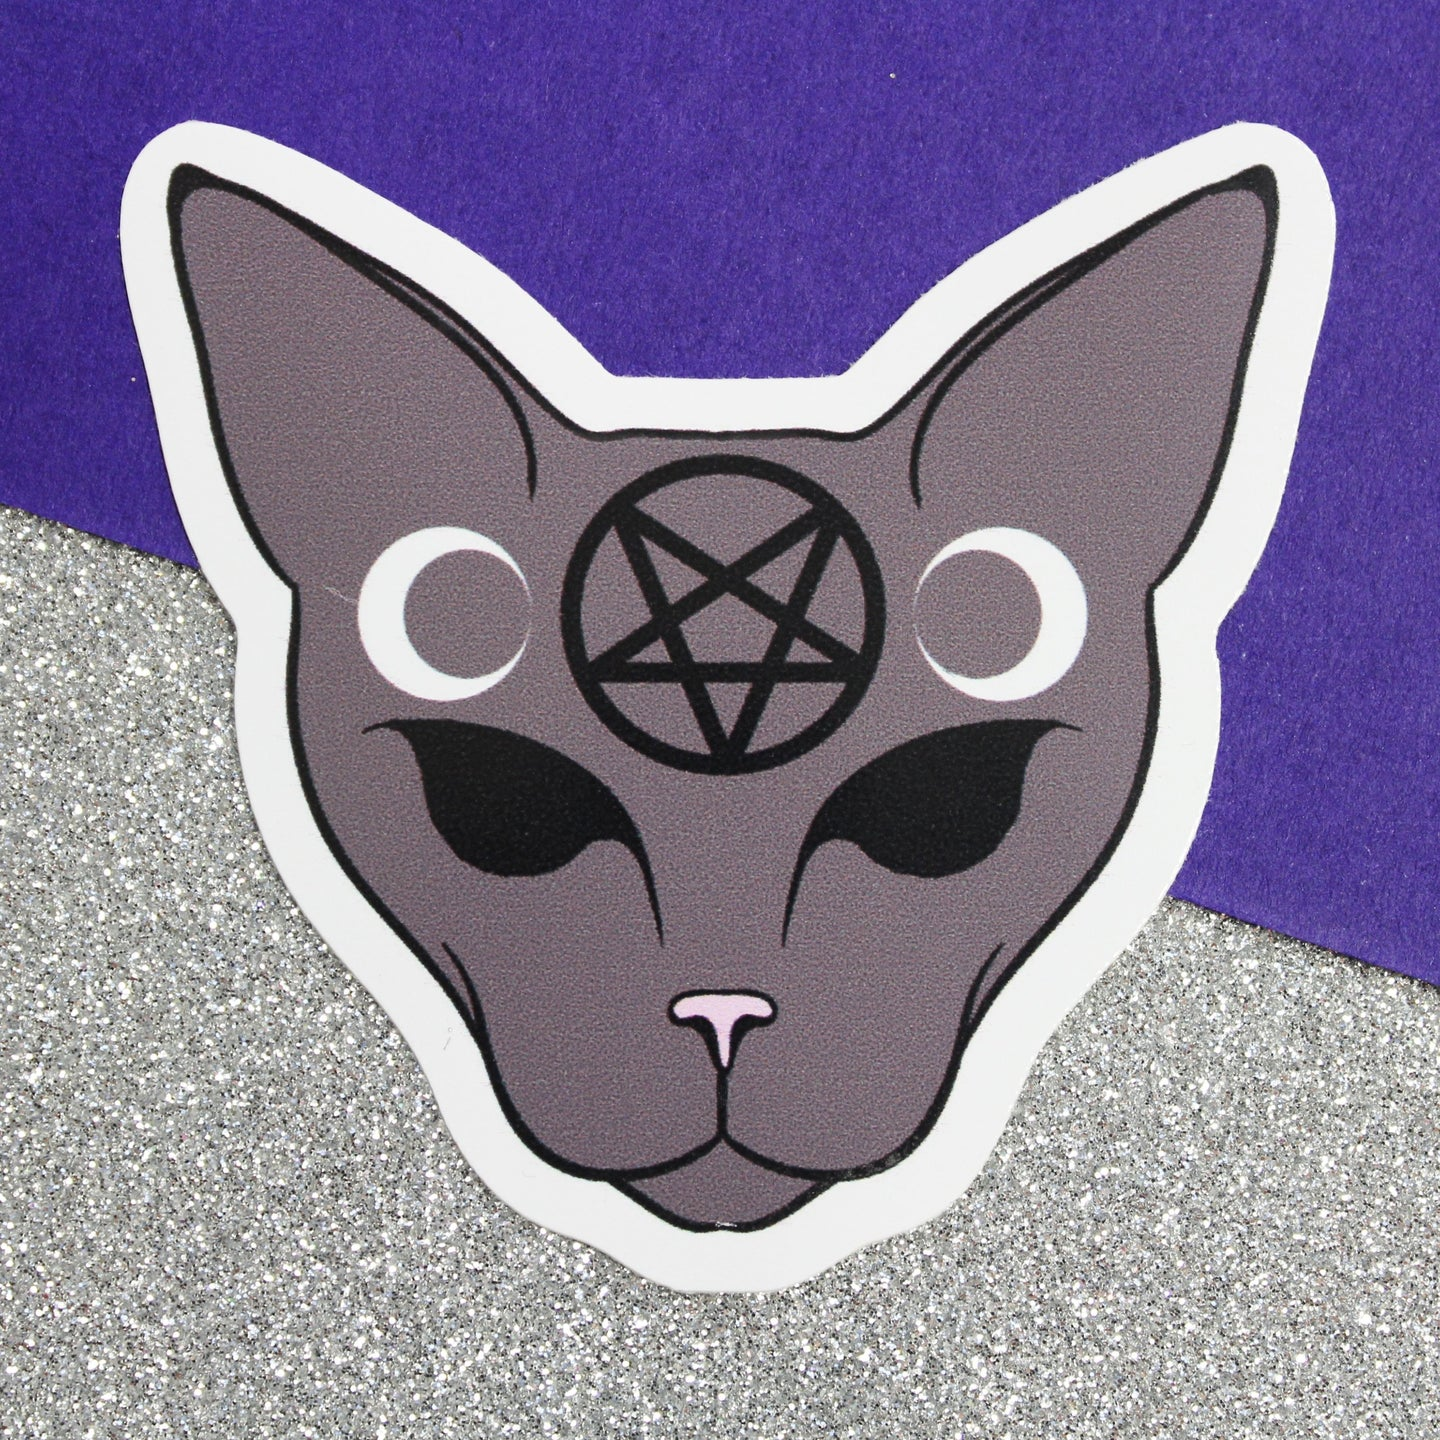 GOTHIC CAT STICKER